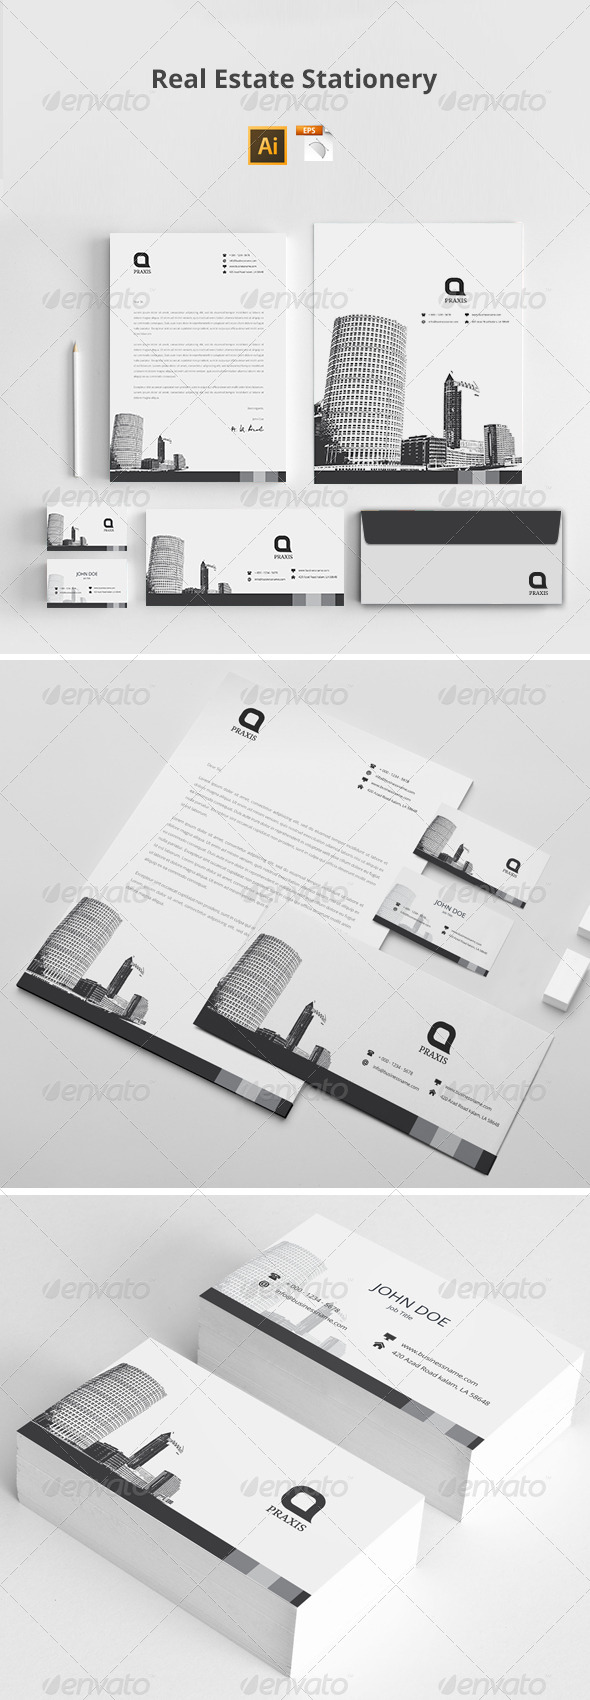 GraphicRiver Real Estate Stationery 8103004